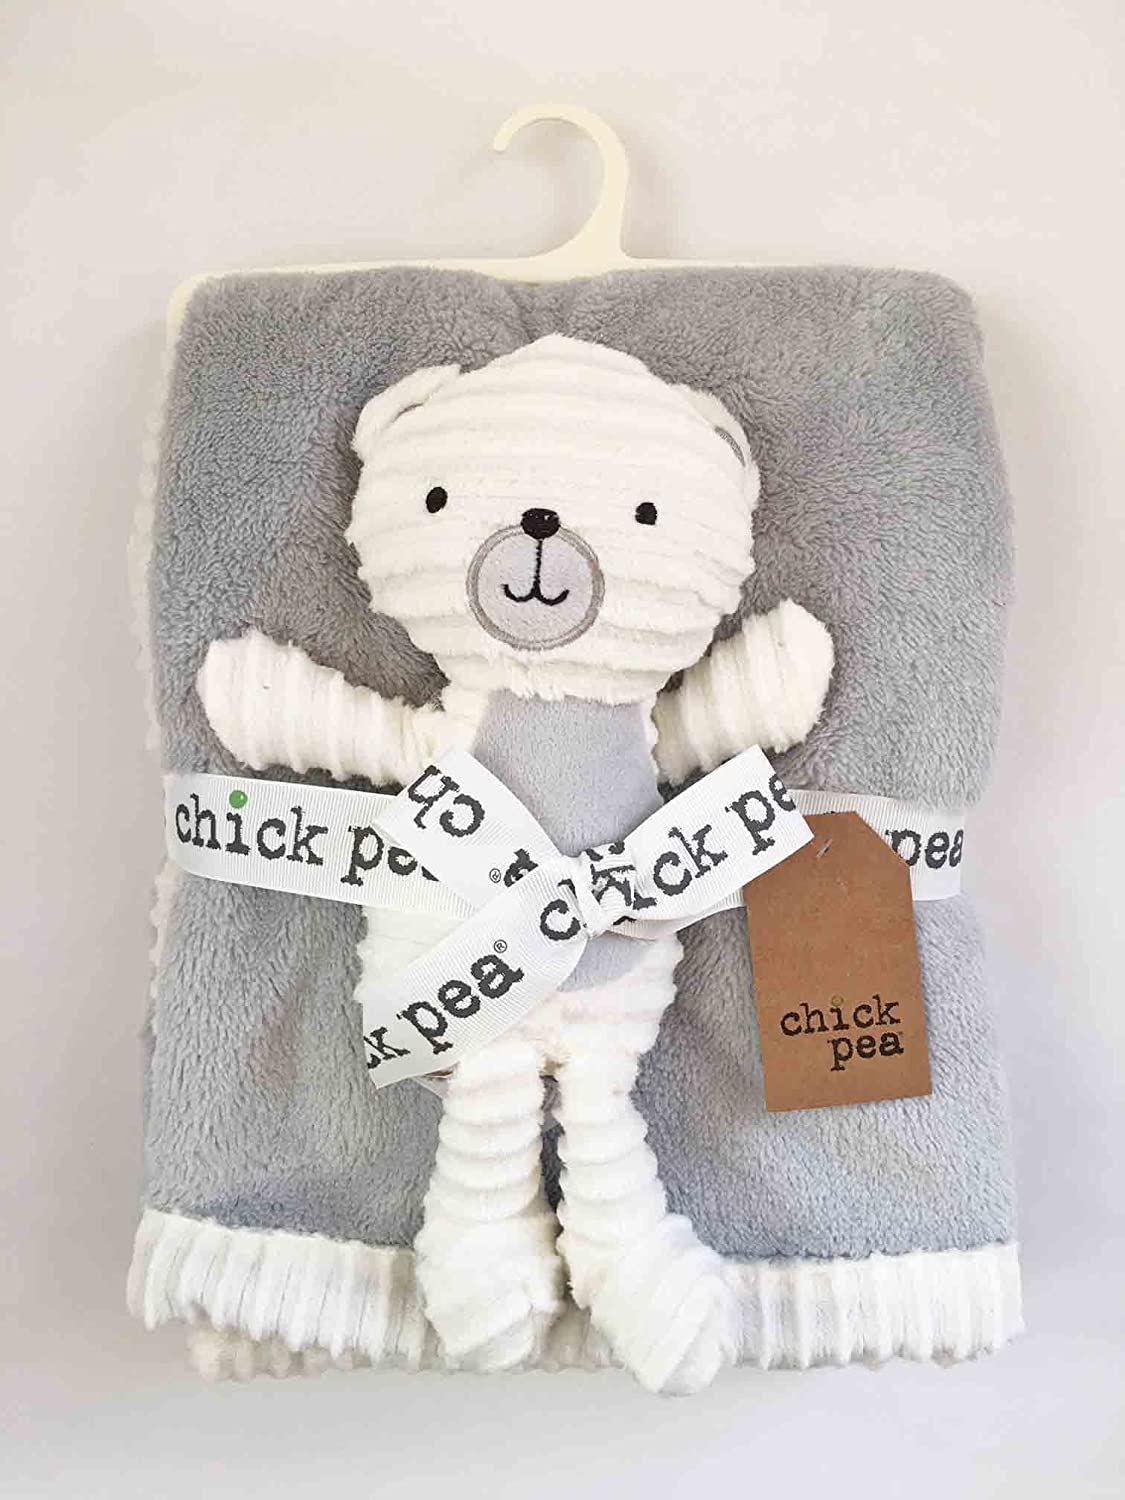 Chick Pea White and Gray Baby Security Blanket 2Pc Set Cutie pie inc Fc2345